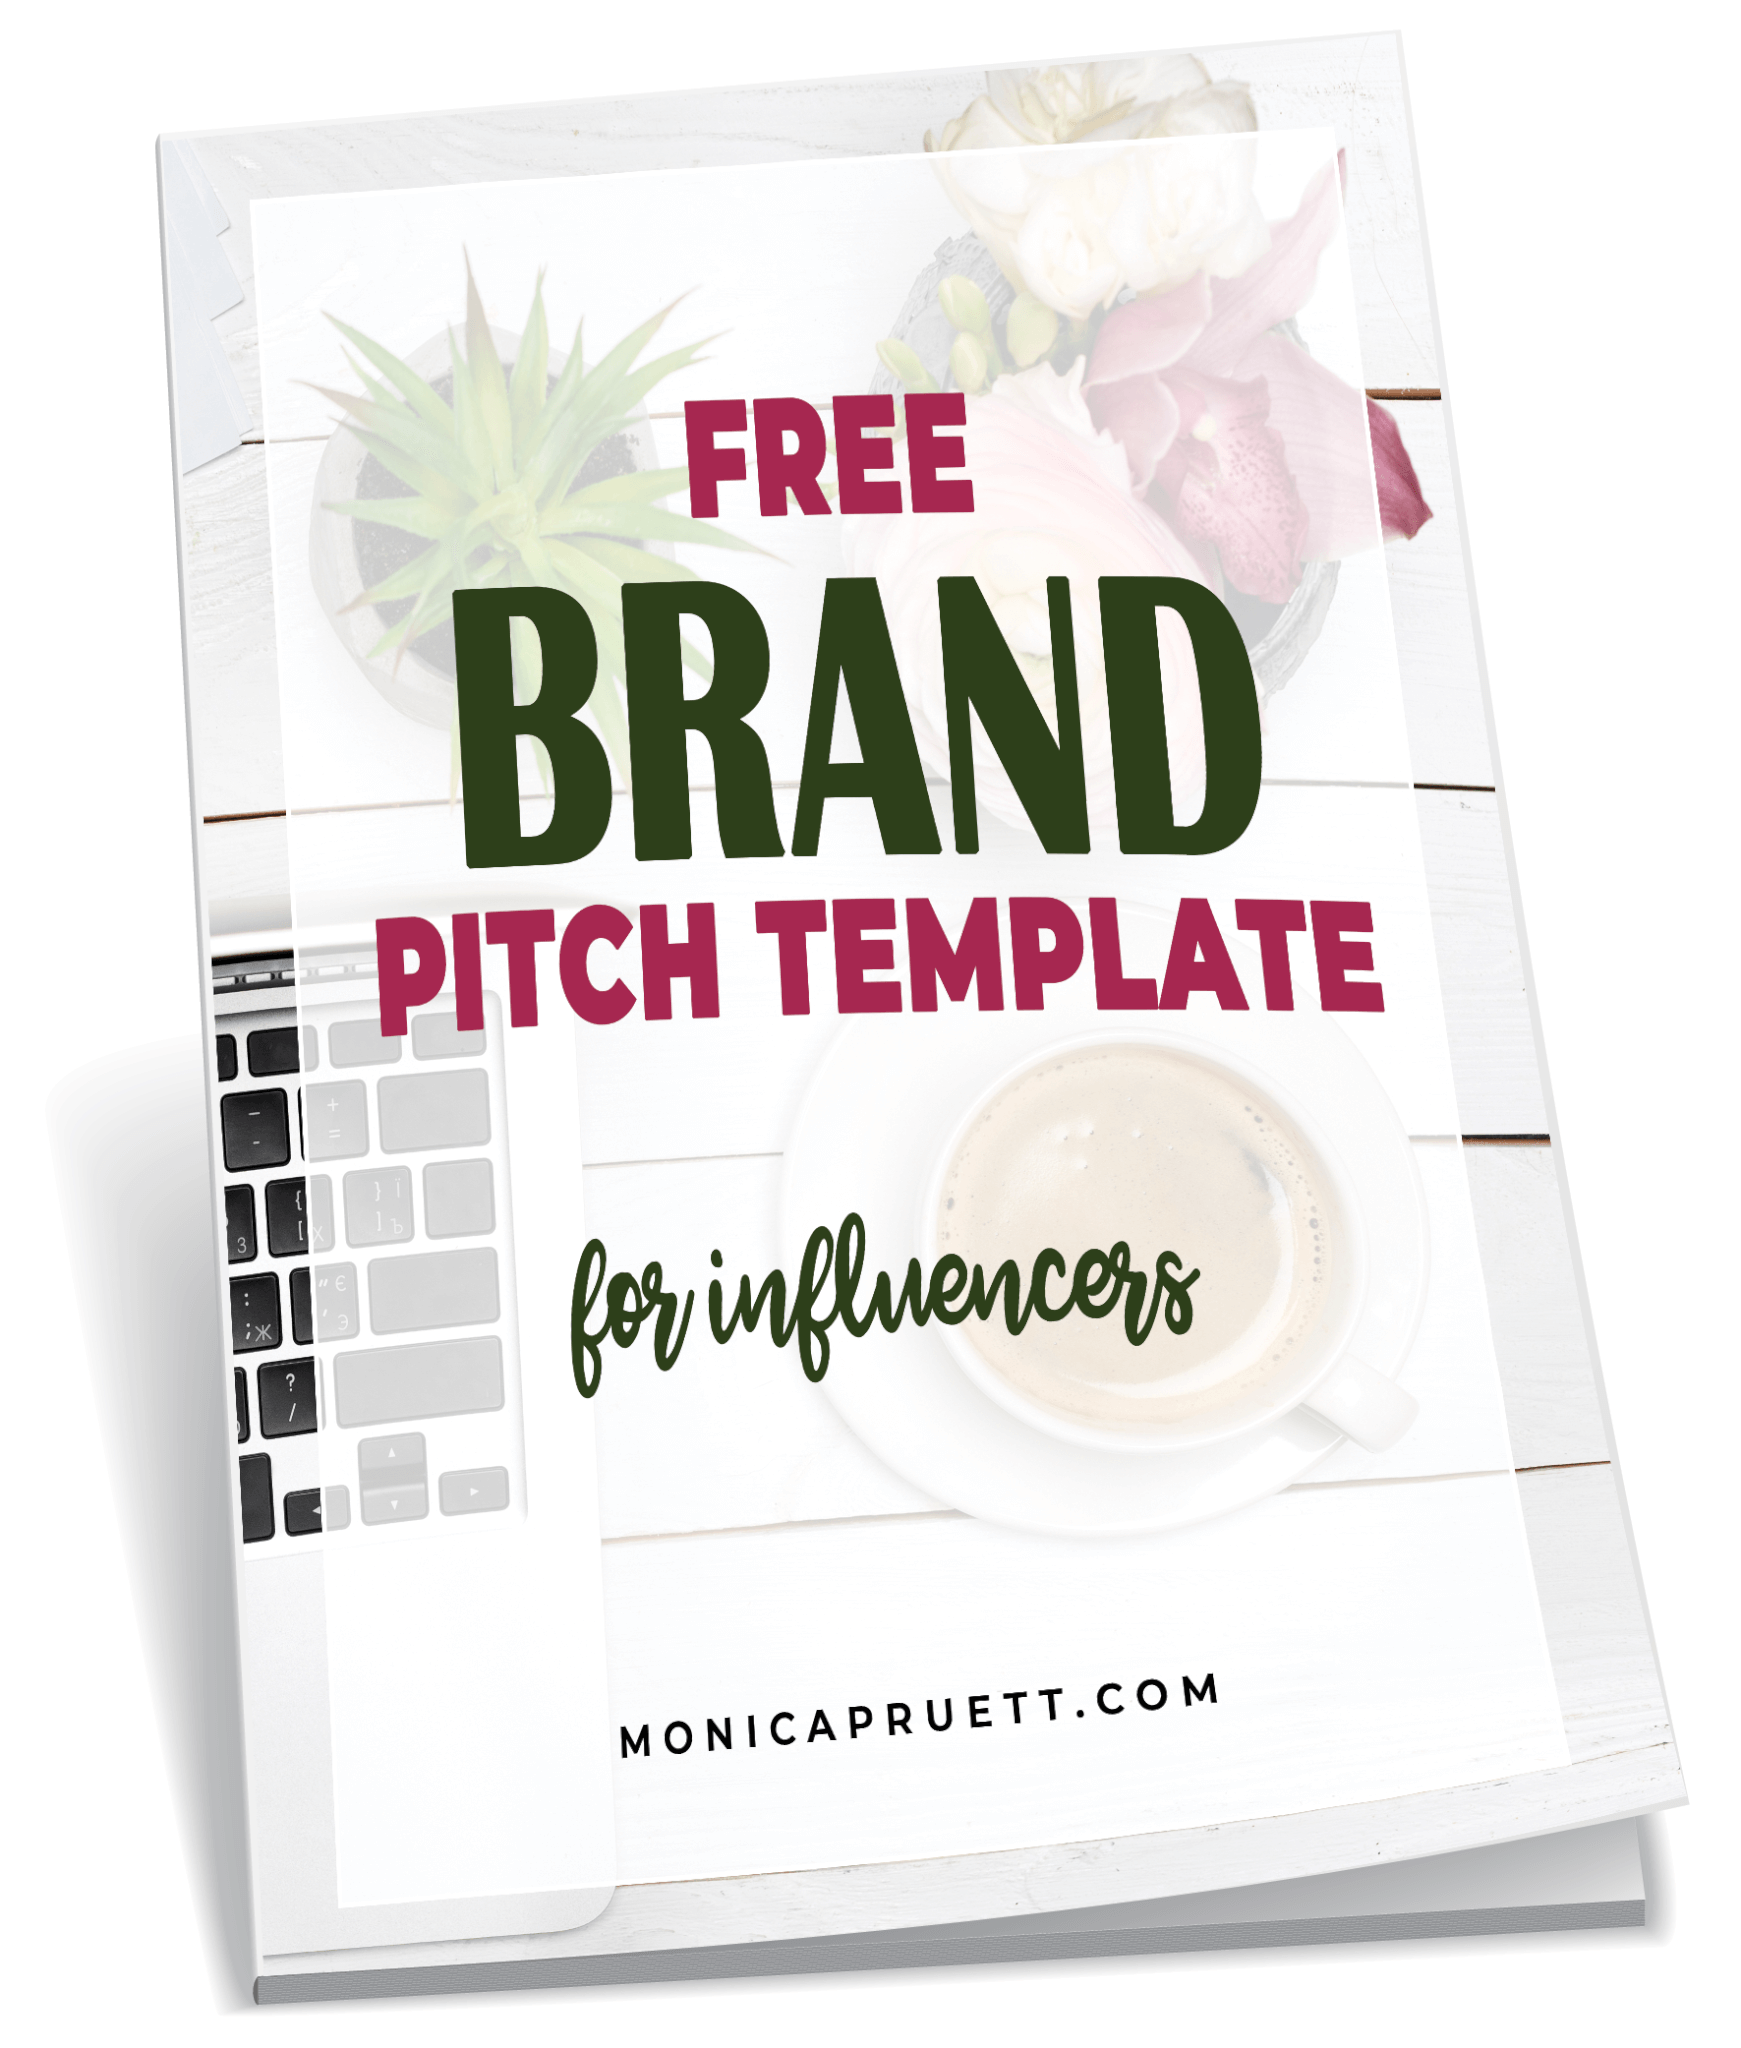 FREE Brand Pitch Template Workbook Cover on Workbook